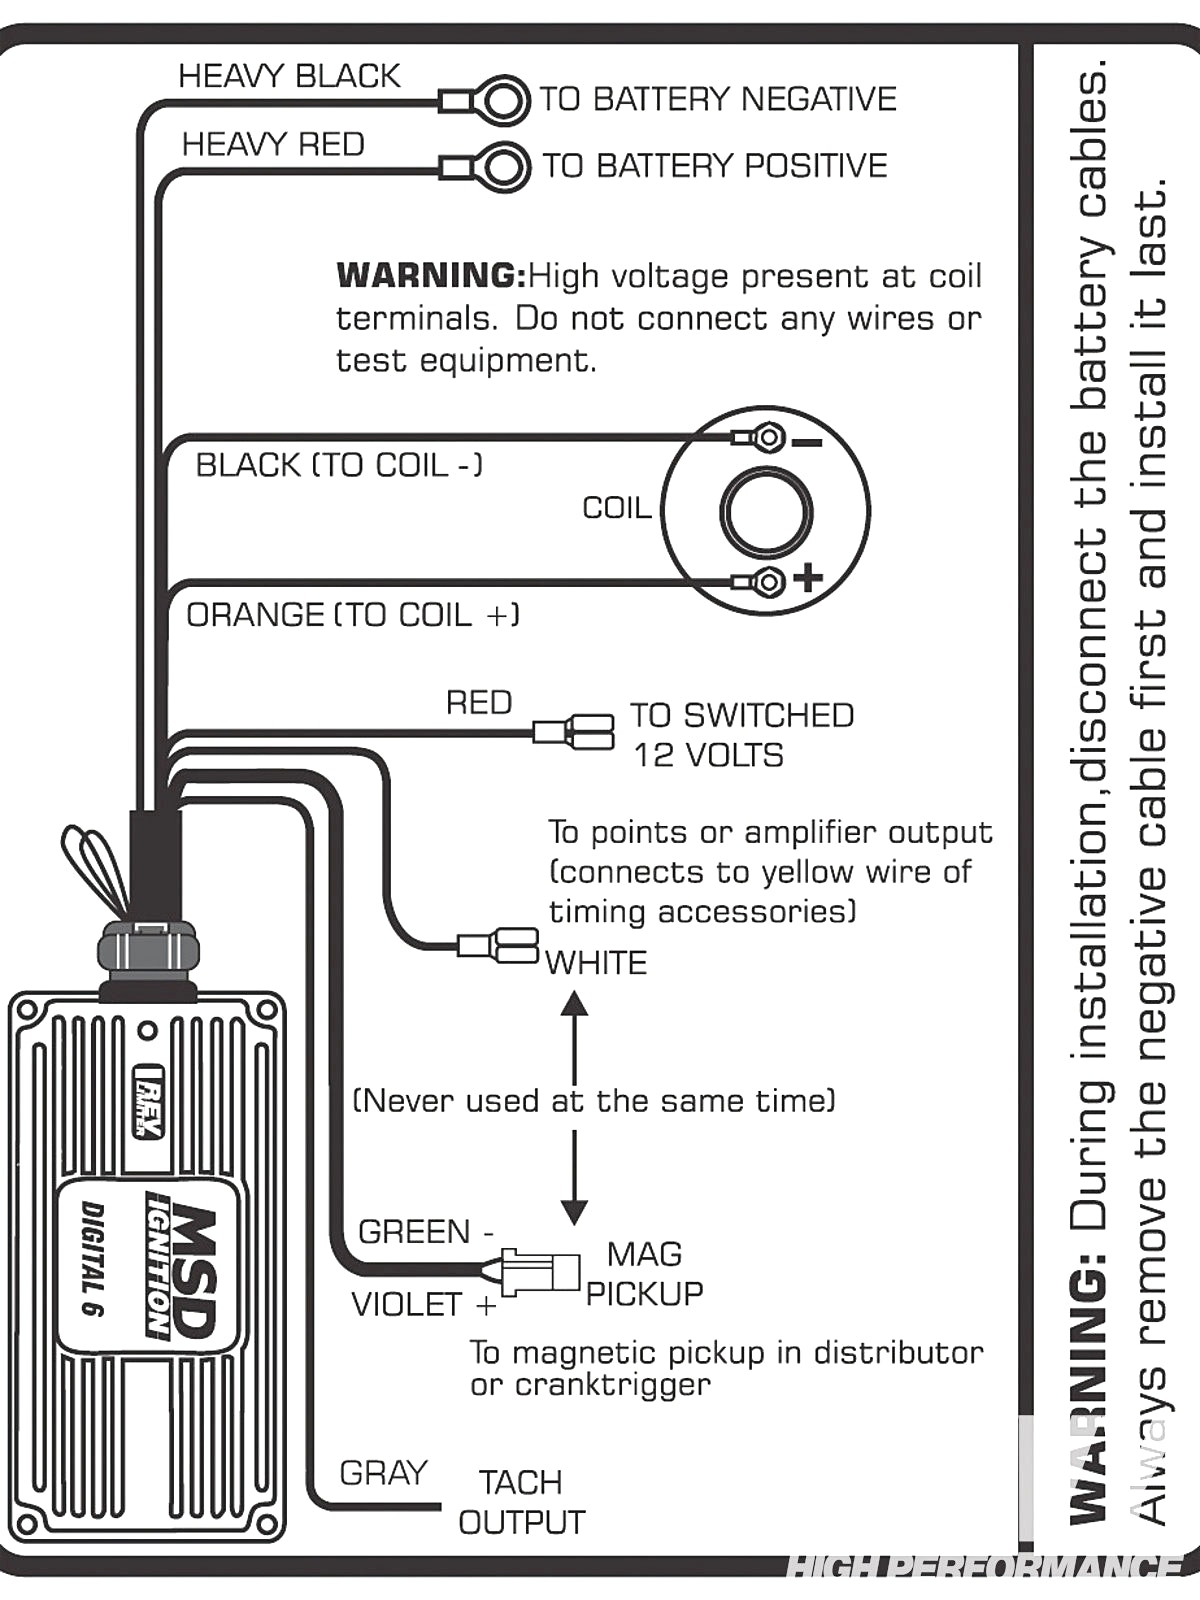 Mallory Ignition Wiring Diagram 75 | Online Wiring Diagram on inboard outboard motor diagram, mallory high fire wiring-diagram, basic car electrical system diagram, electronic ignition diagram, mallory dist wiring-diagram, fairbanks morse magneto diagram, omc ignition switch diagram, mallory carburetor diagram, msd 6al diagram, atwood rv water heater diagram,